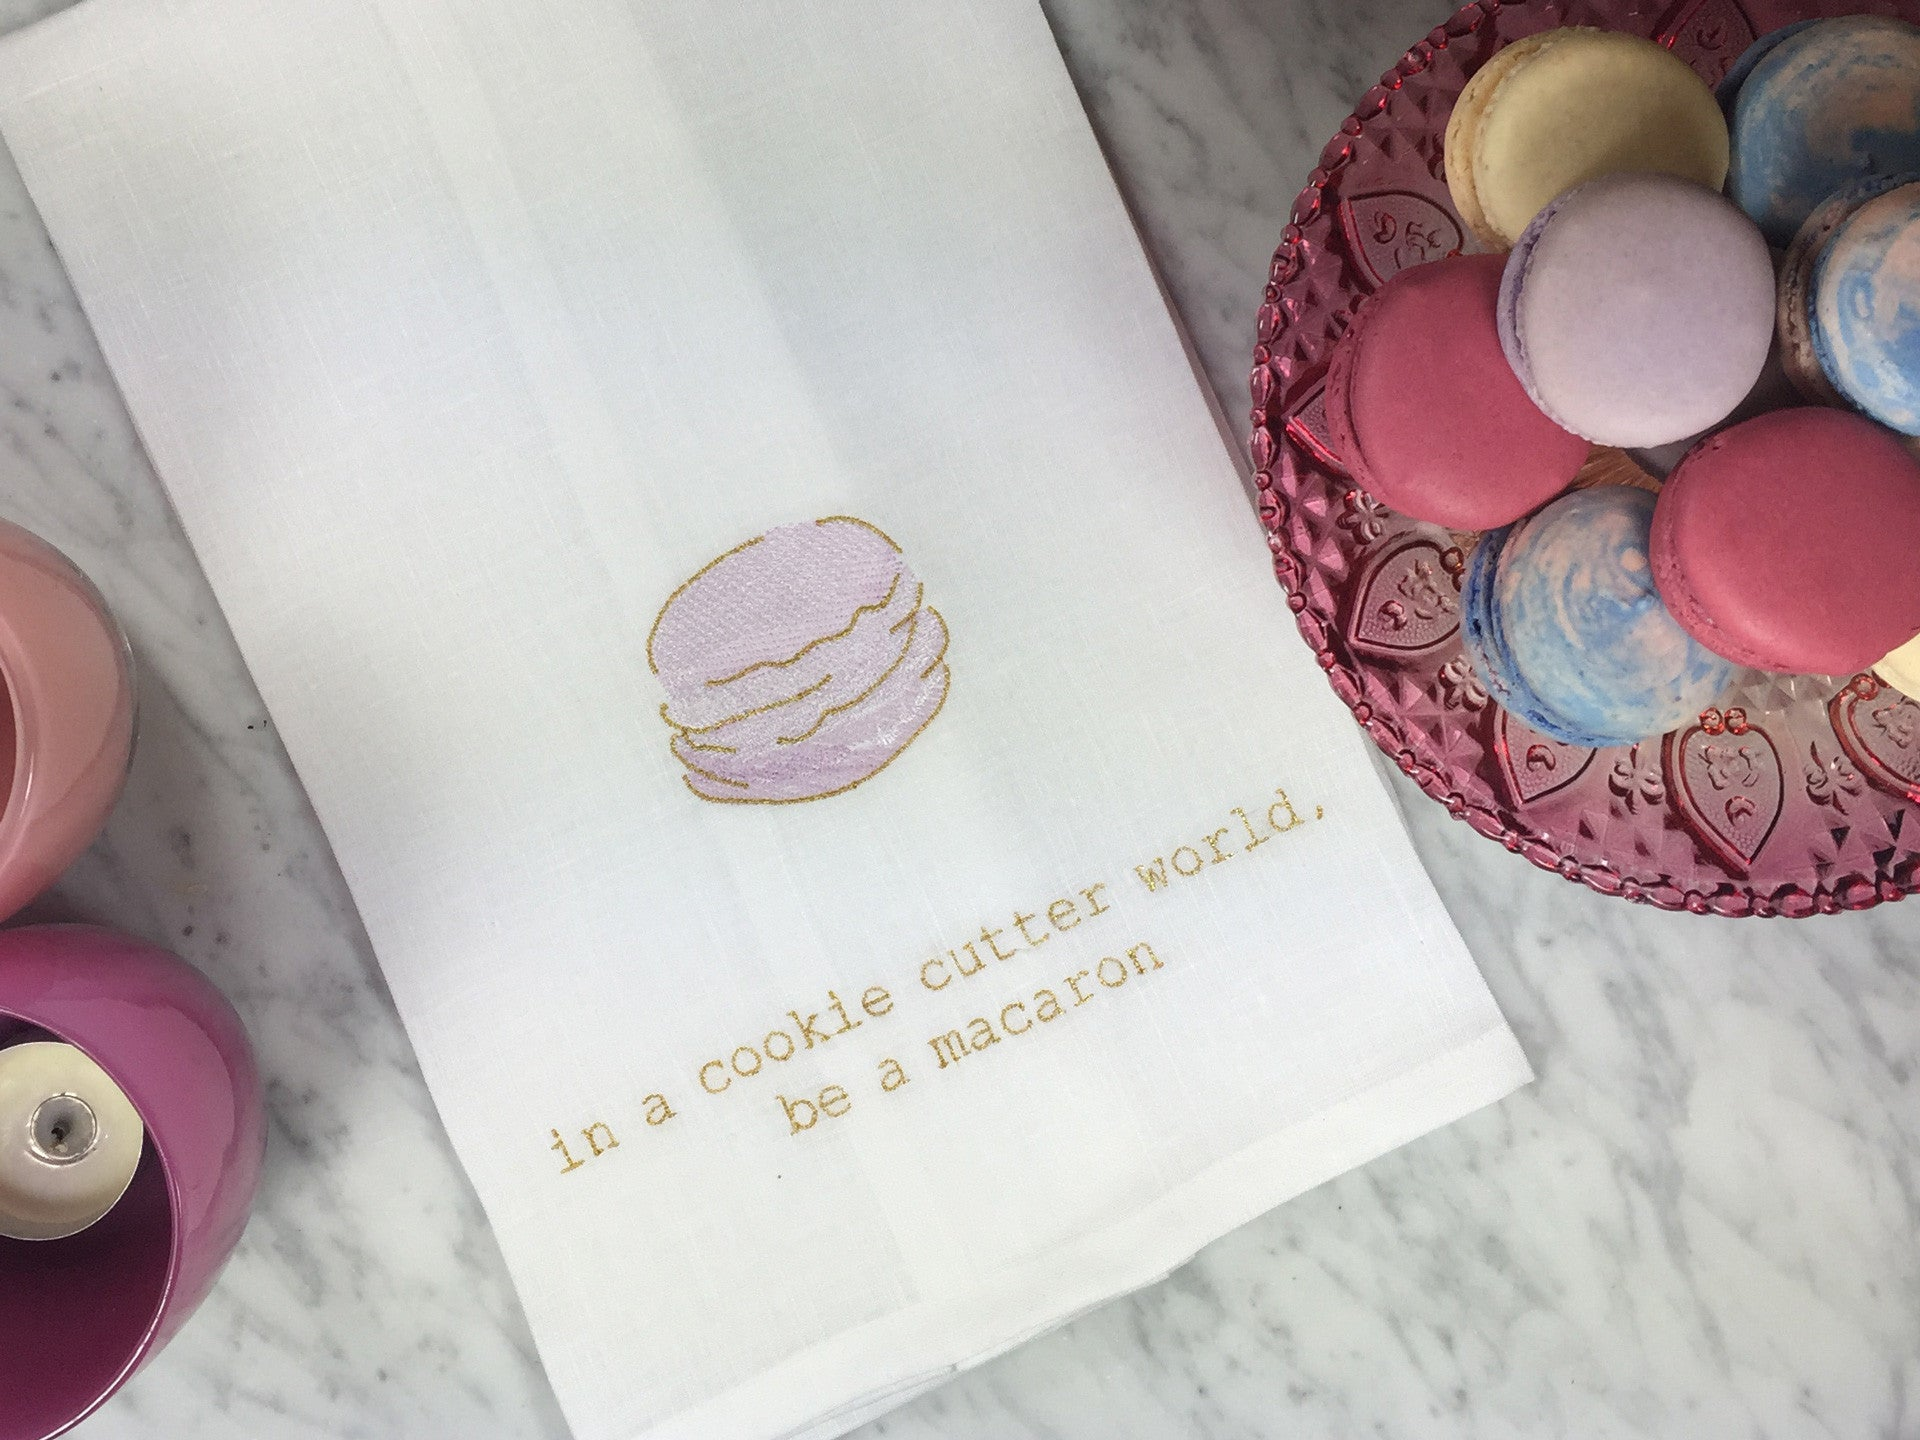 Macaron Motivation with Lady Yum Macarons and Anthropologie Dessert Stand